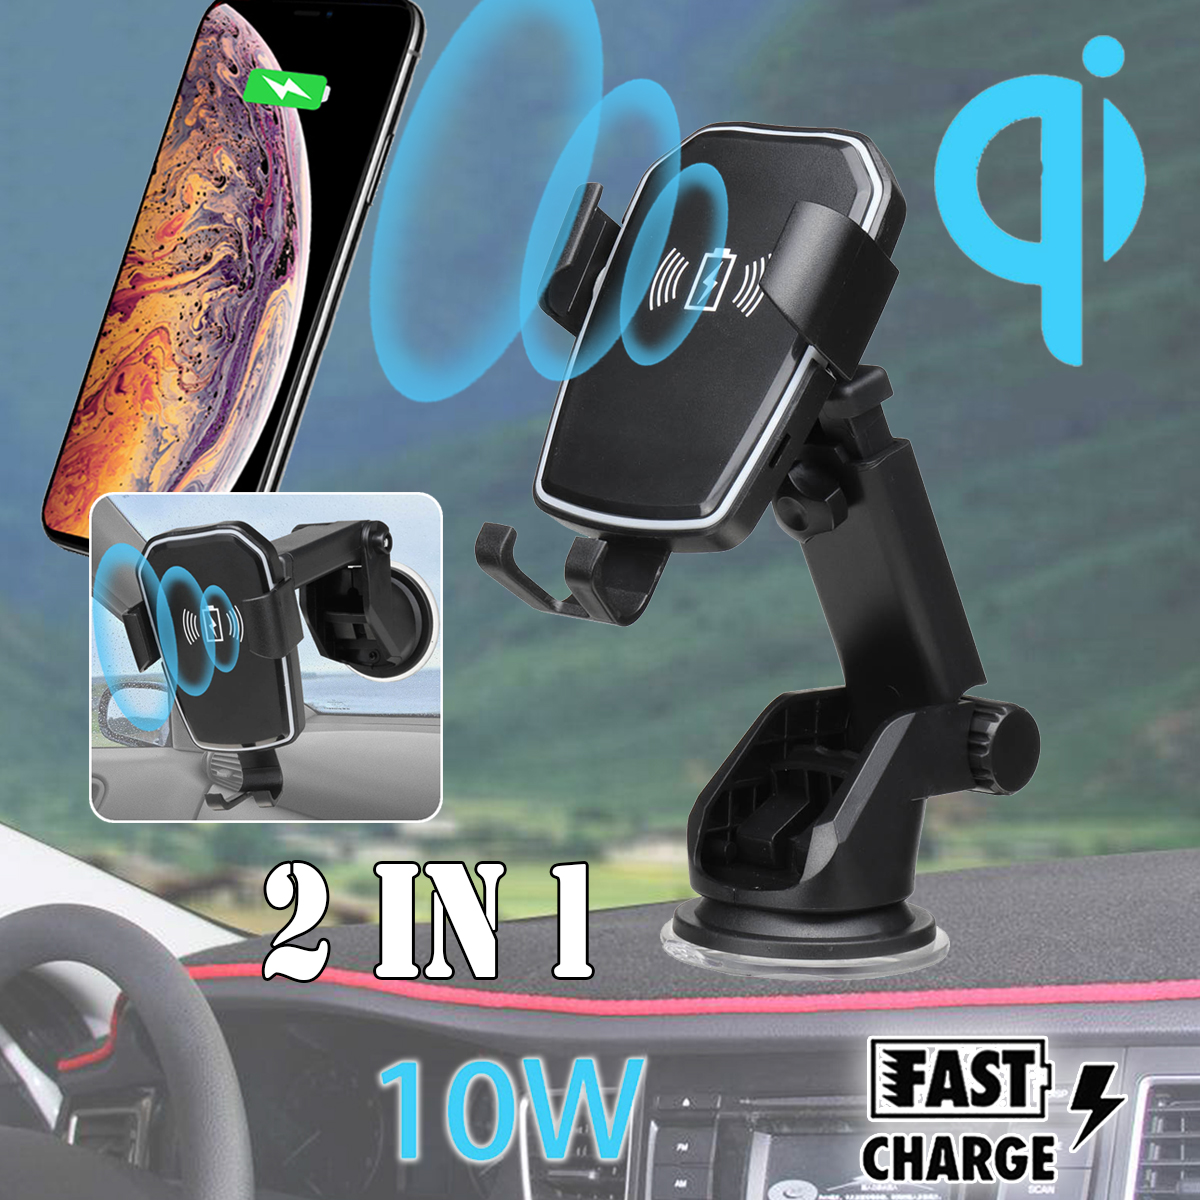 Diy Wireless Phone Charger Pcba Circuit Board Coil Micro Usb Port Aliexpresscom Buy Qi With 10w Car Dashboard Holder Smartphone Fast Charging Gravity Strong Suction Cup For